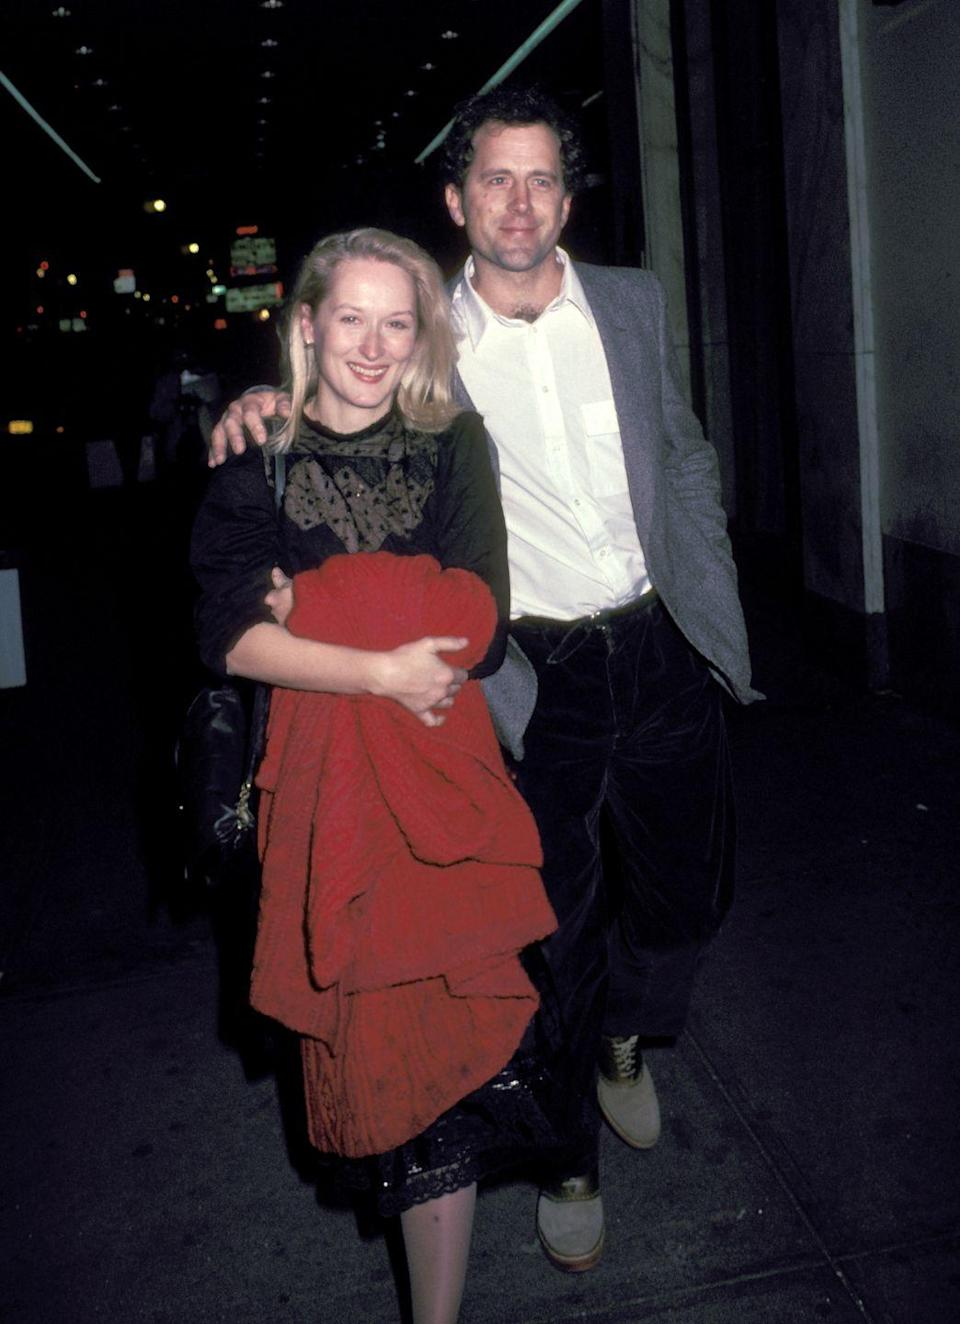 <p>After Streep's boyfriend, John Cazale, tragically died in 1978 her brother's friend, Don Gummer lent her his apartment. They married later that year and have four children, Henry, Mamie, Grace and Louisa together.</p>